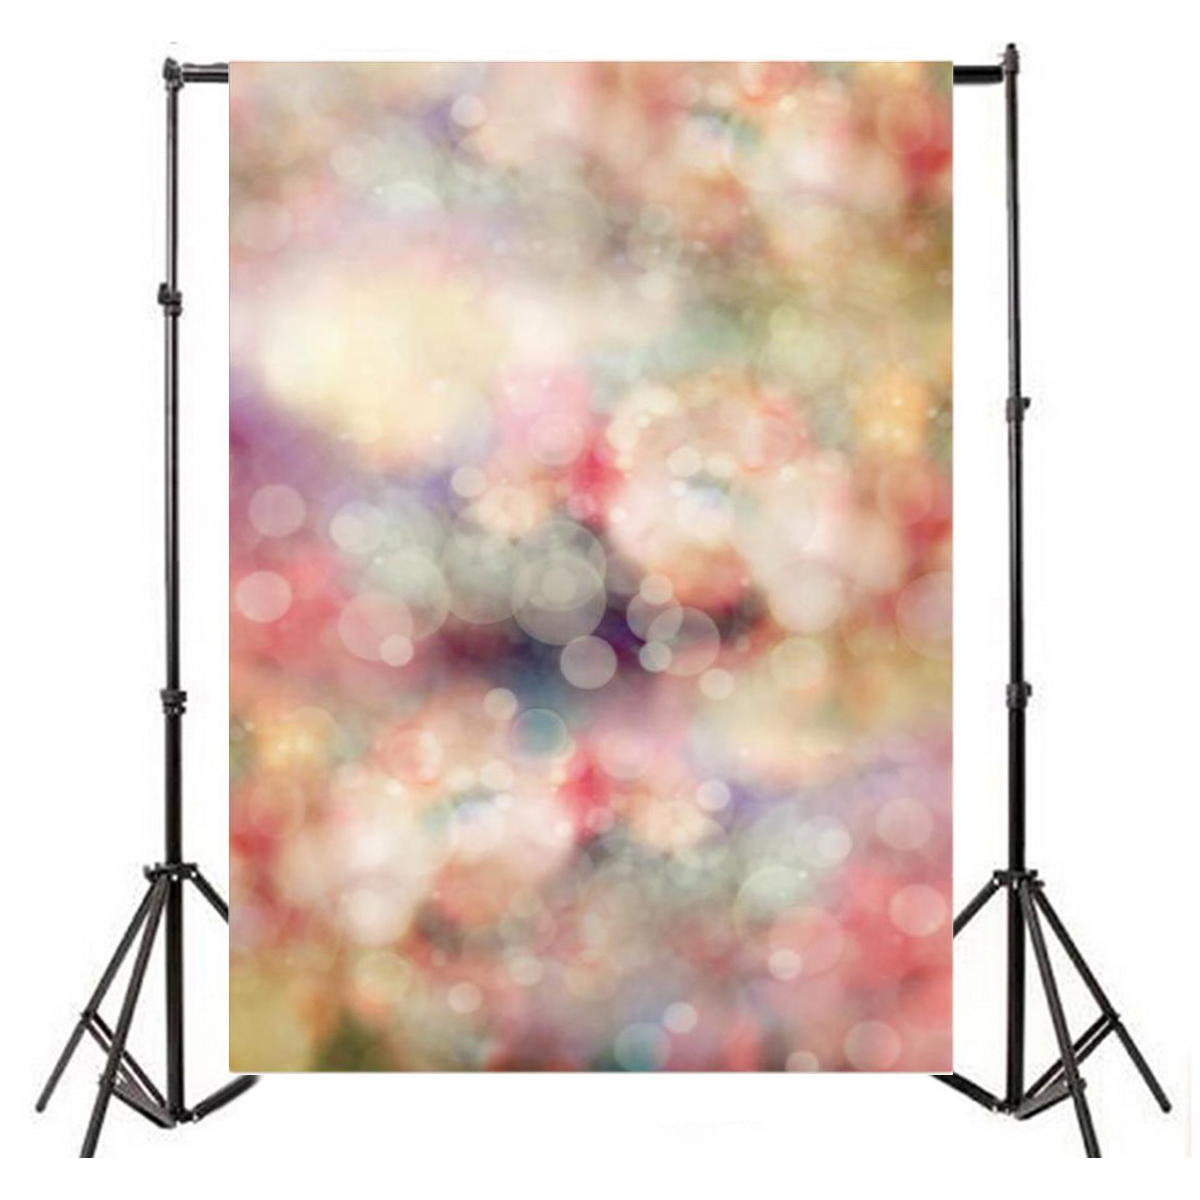 Top Deals 3x5ft Thin Vinyl Photography Backdrops Abstract Pretty Theme Baby Newborn Birthday Photo Background Studio Props